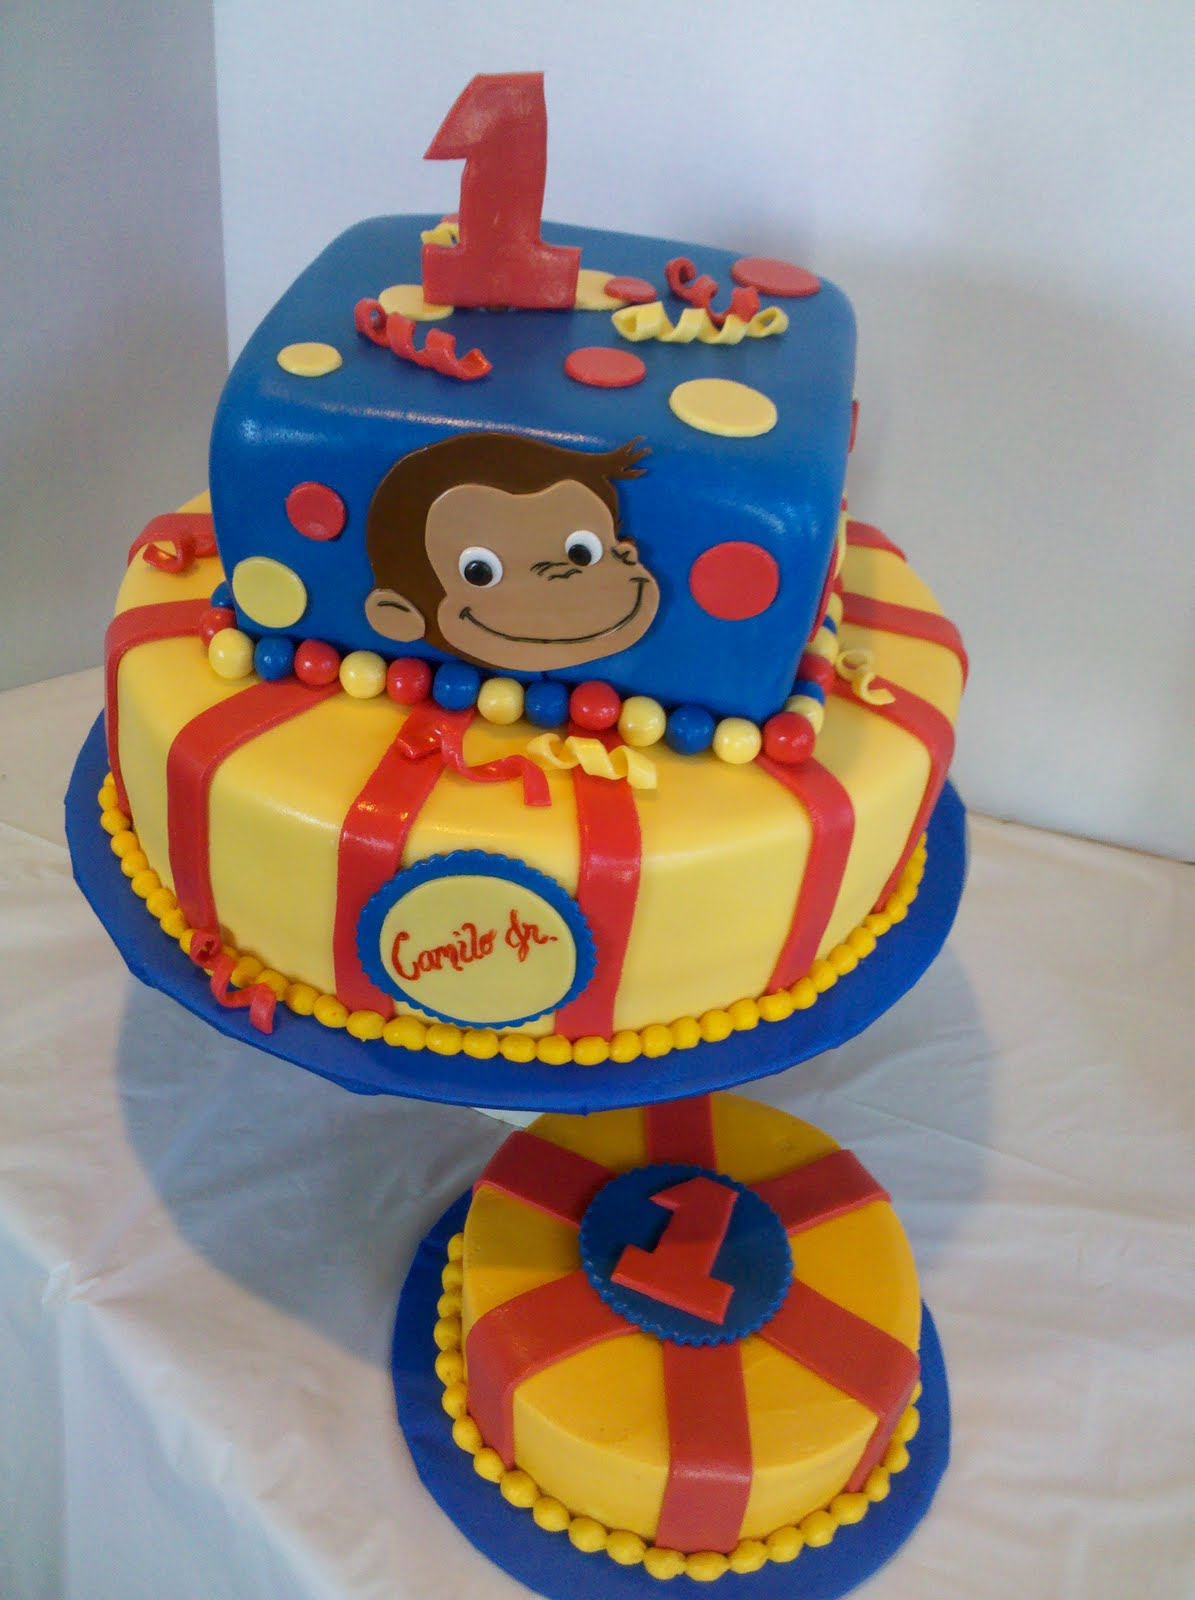 Candicakes Cakes For Kiddos Take 2